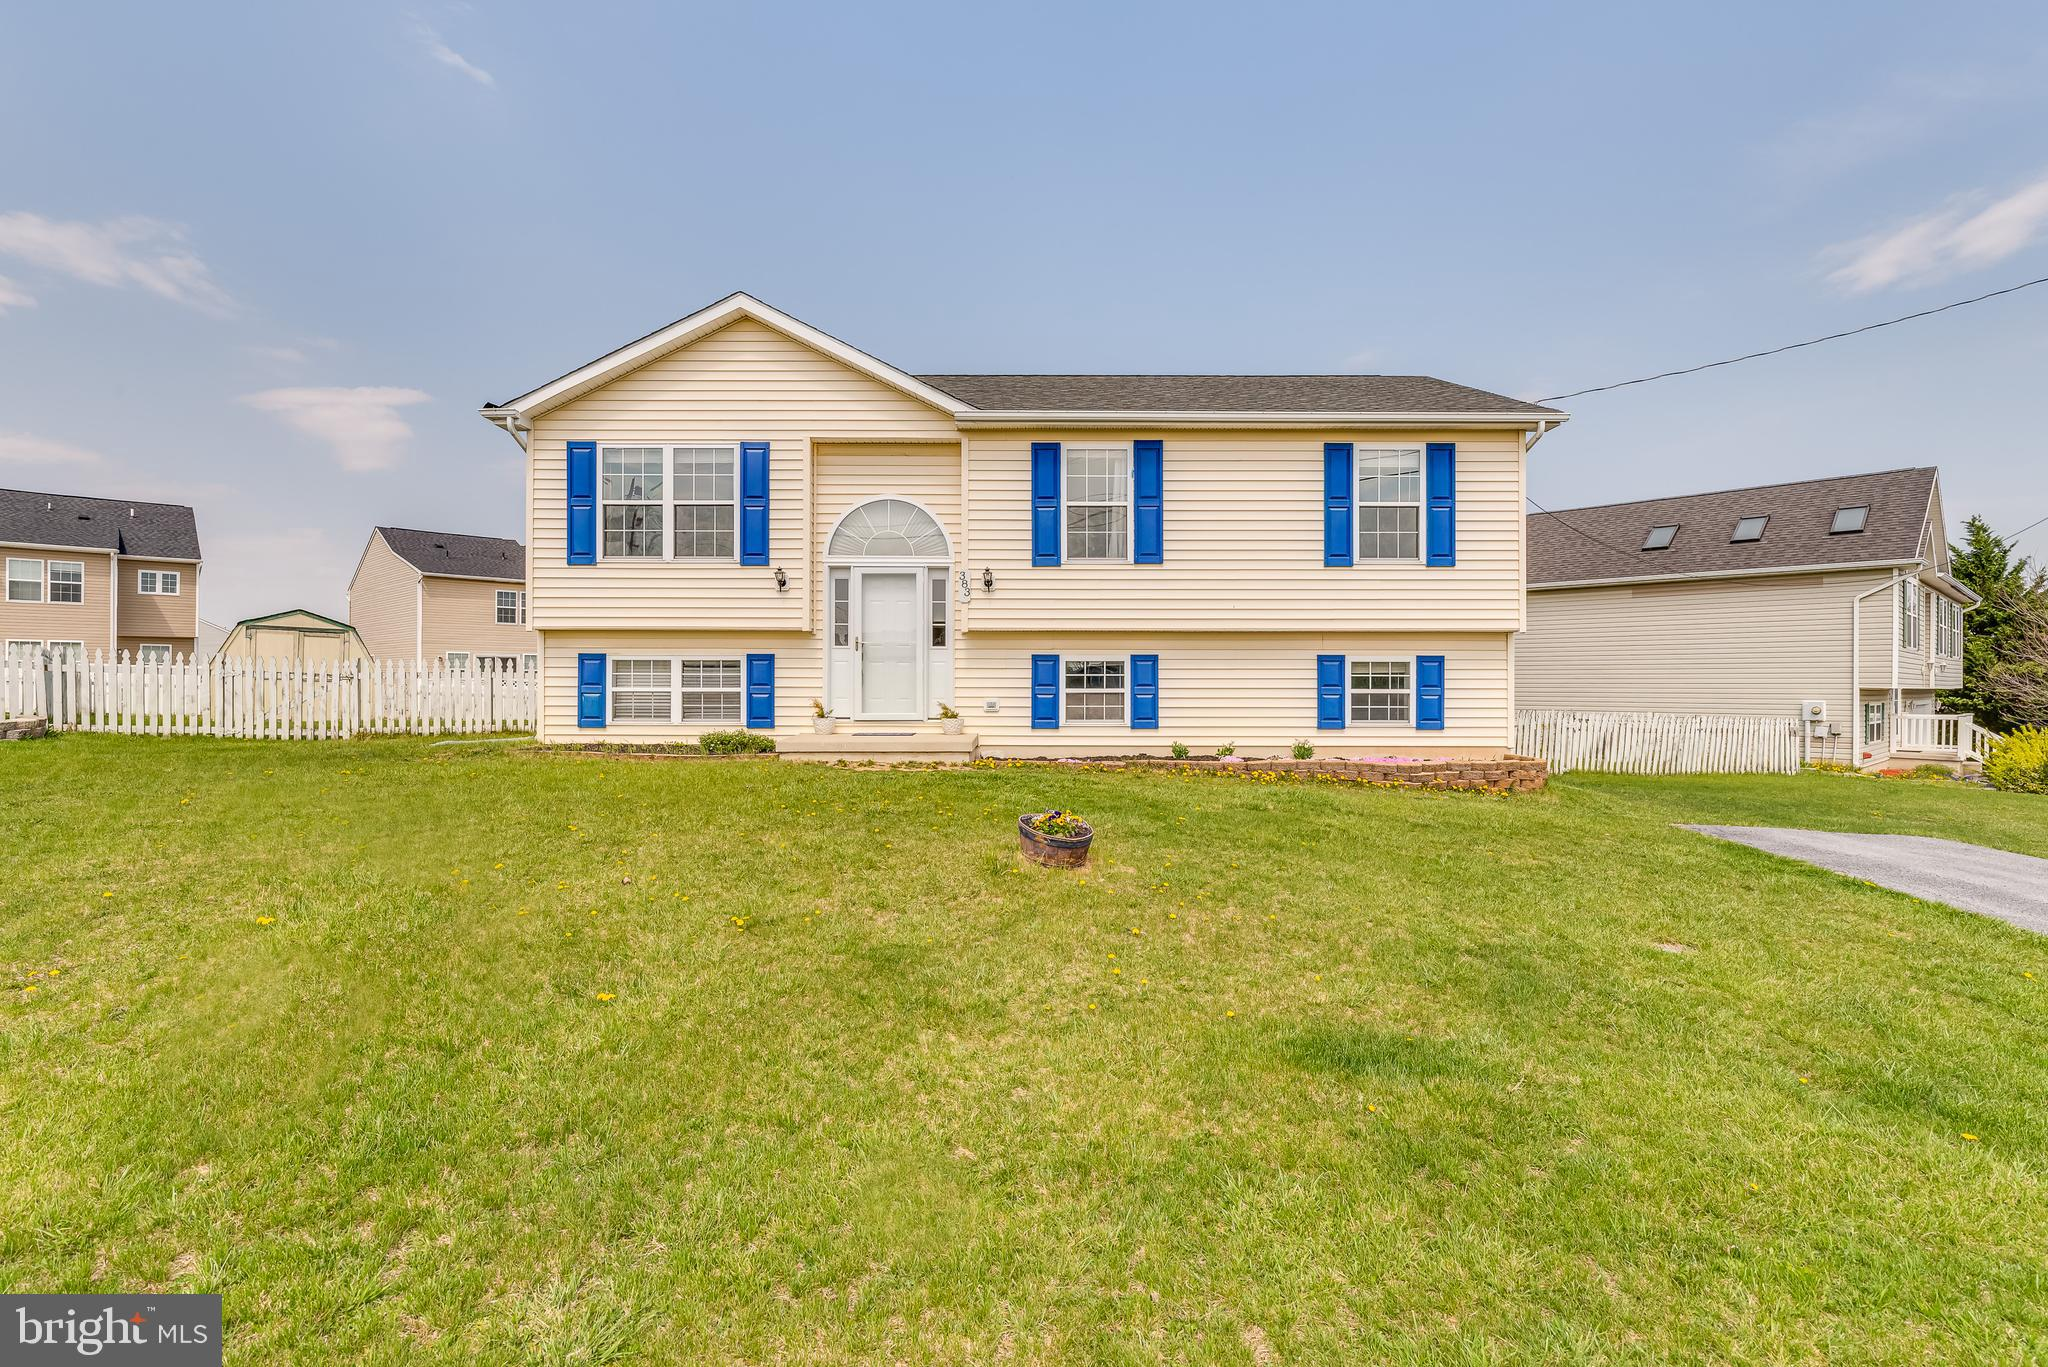 Don't miss the chance to secure this dwelling with almost 1900 finished sq. ft. of living space!  A